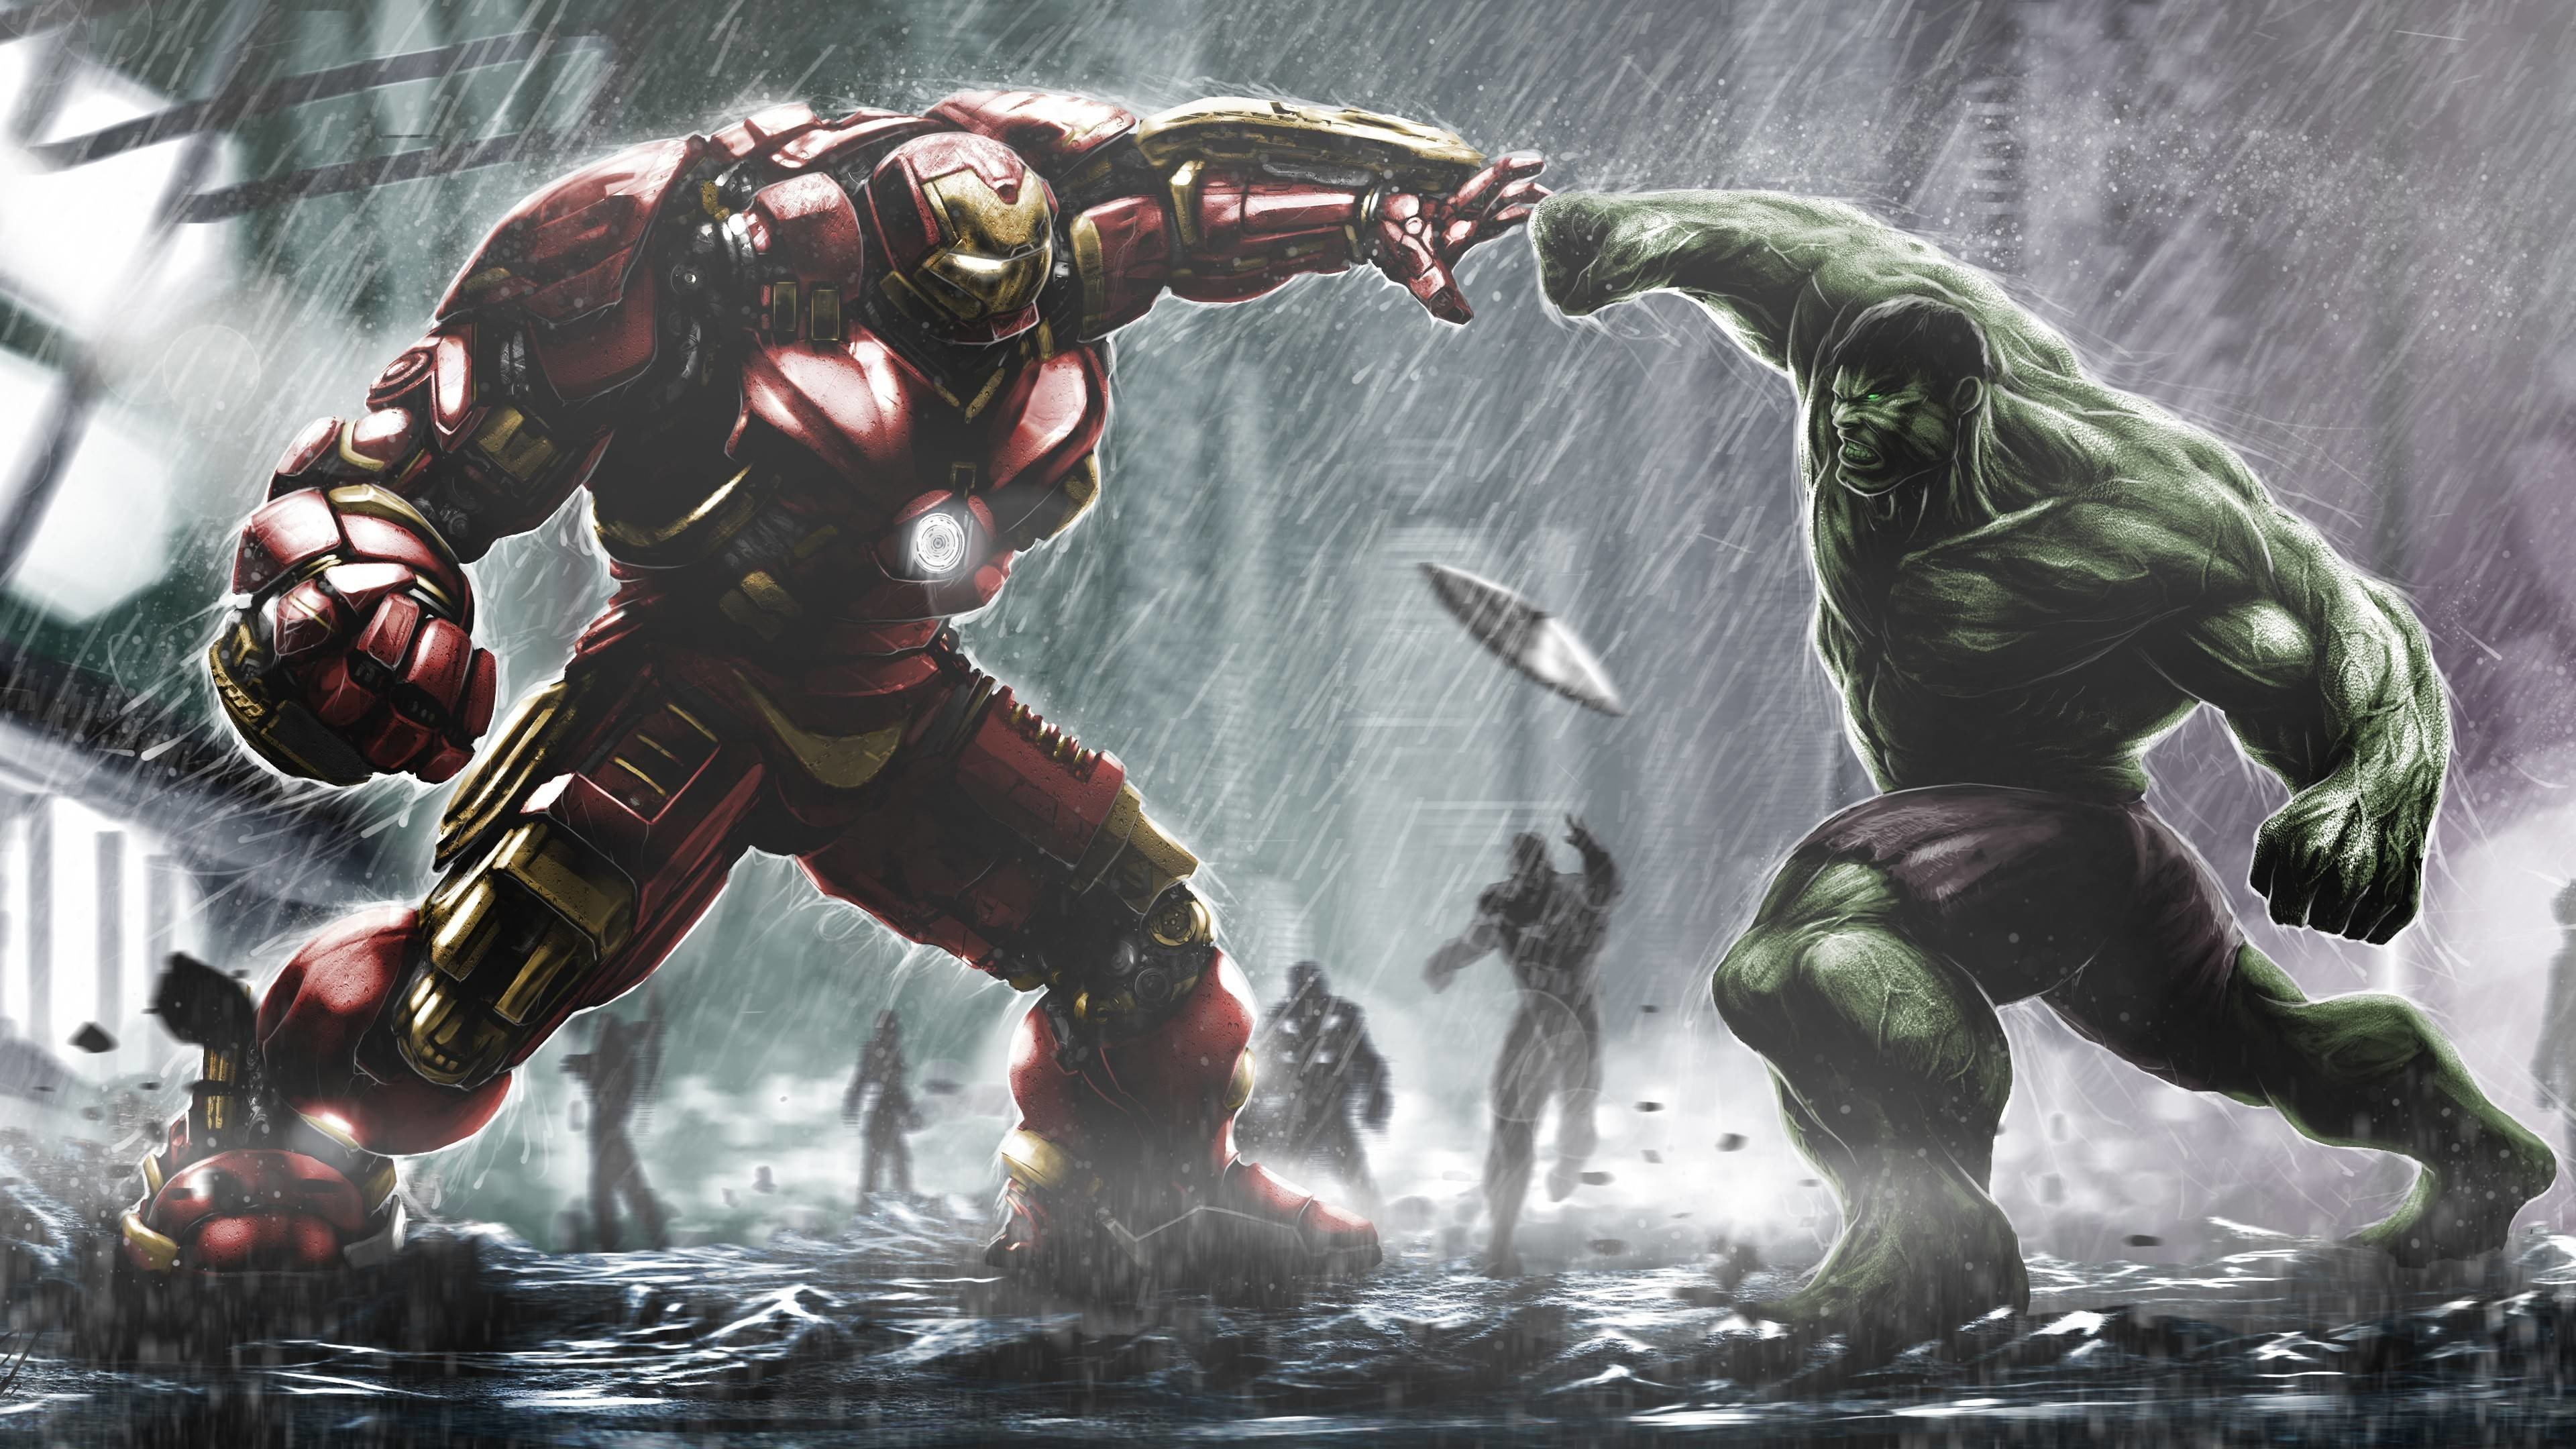 HD Hulkbuster Wallpaper 74 images 3840x2160